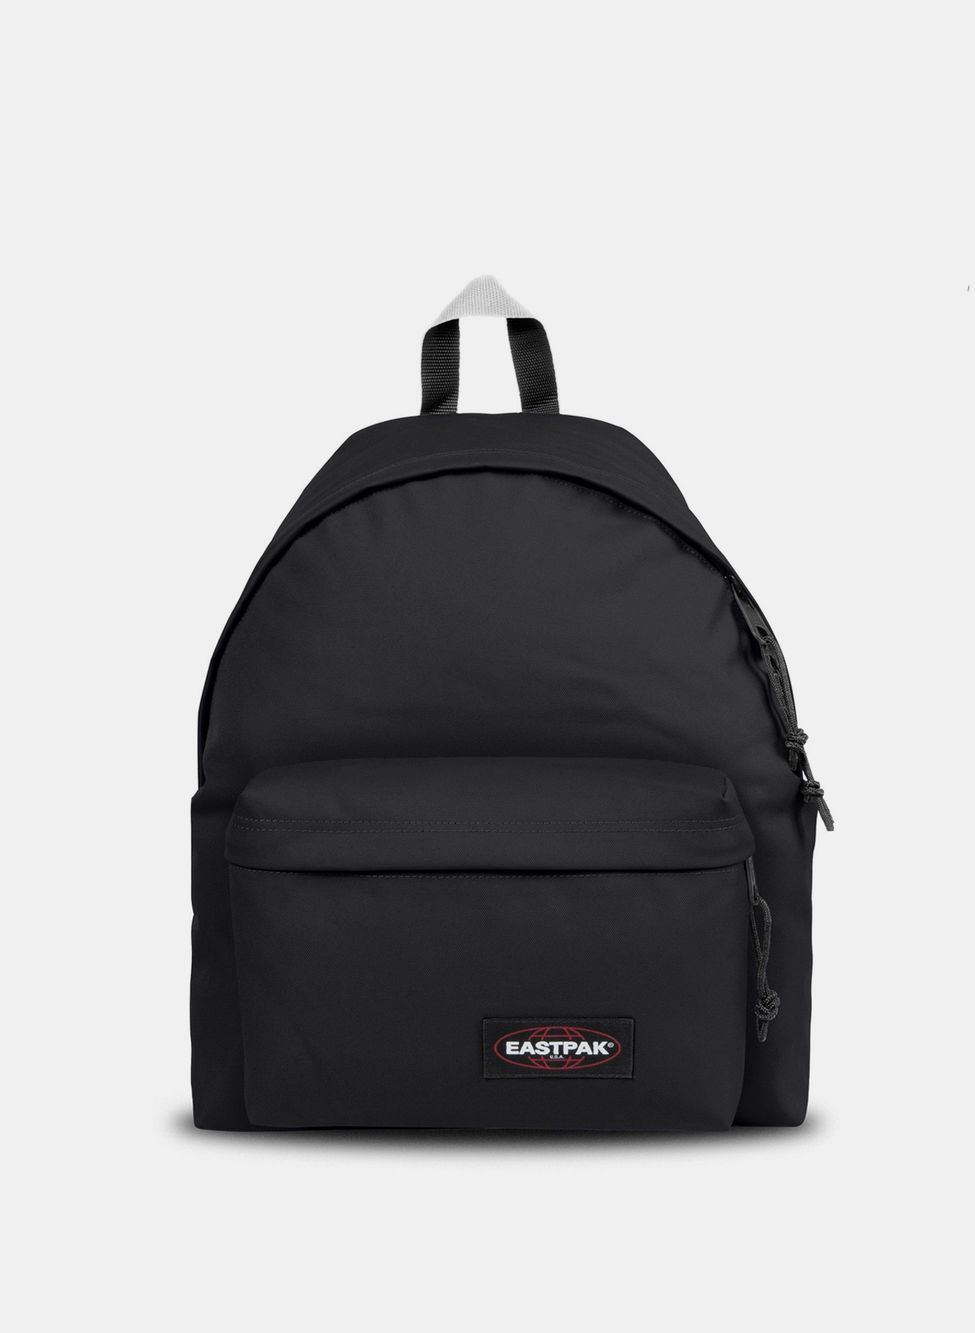 Photo of eastpak 20/21